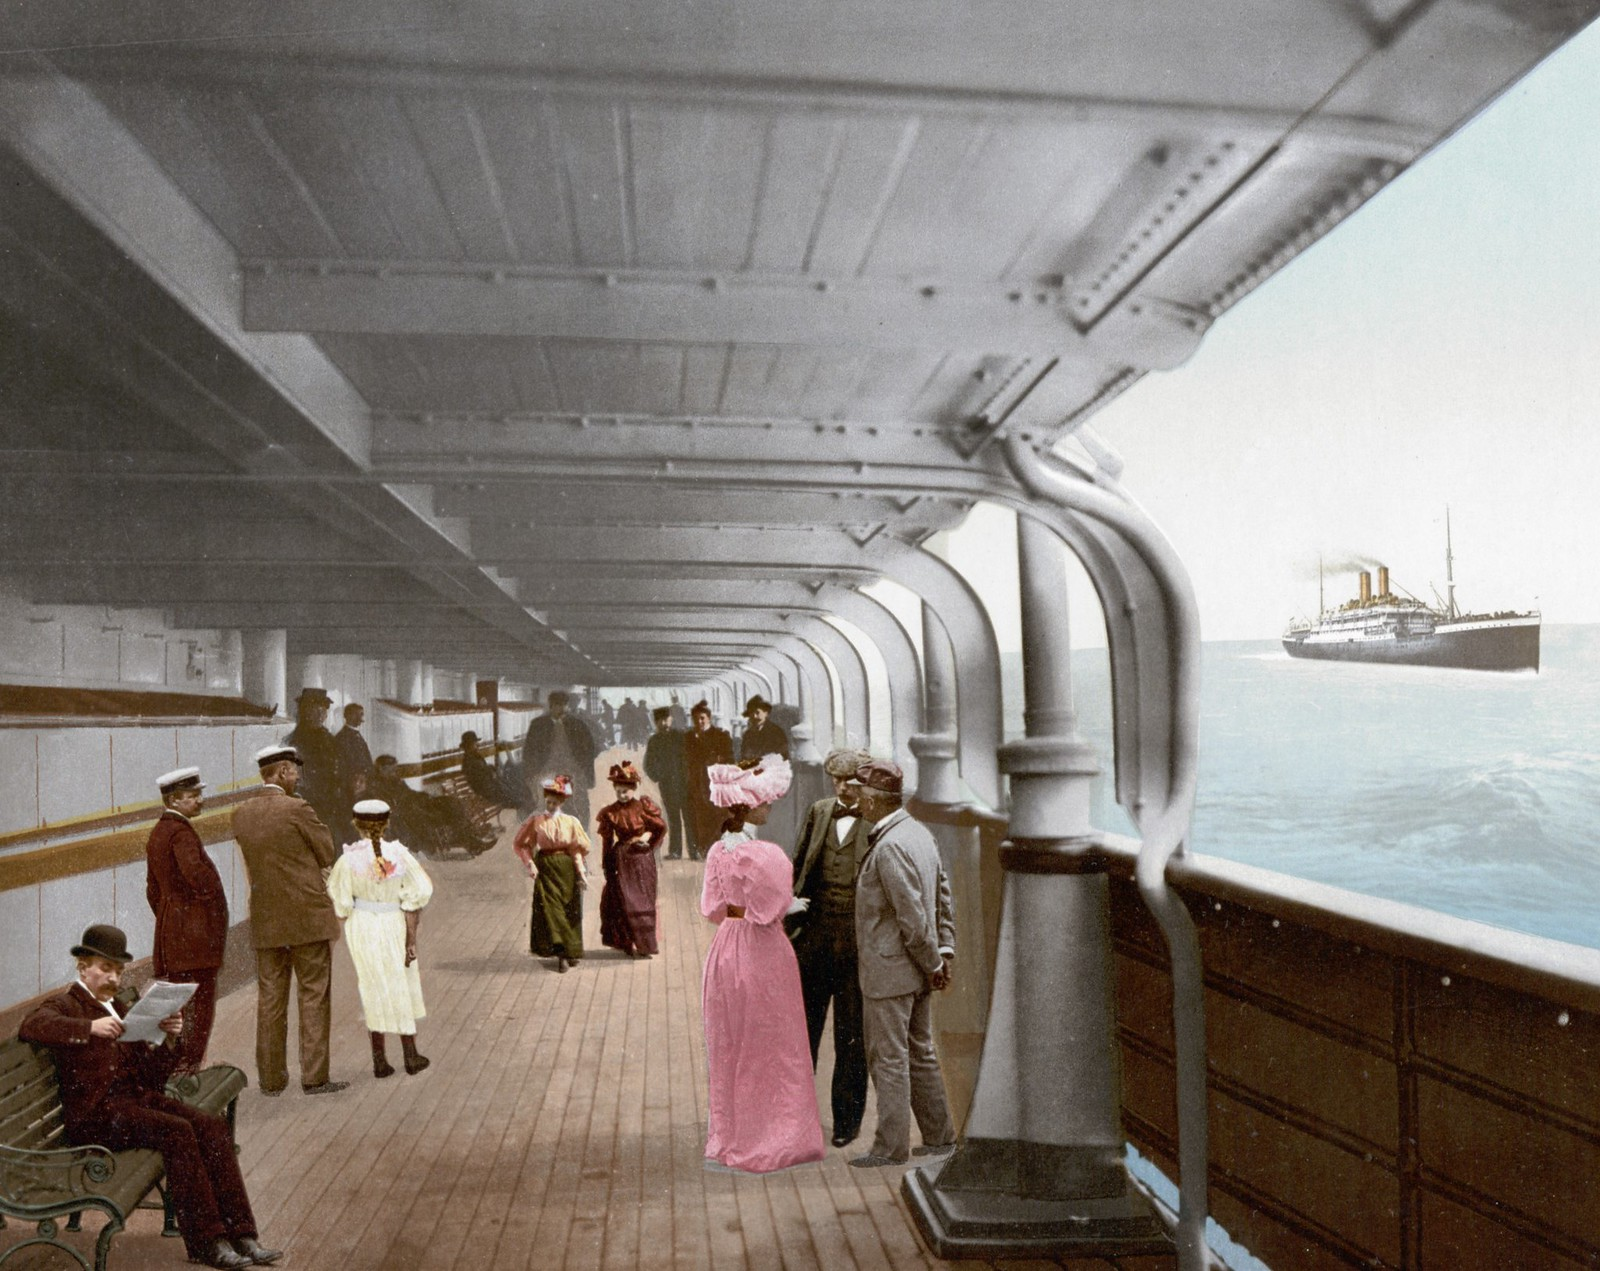 Victorian life on the promenade deck of an 1890s transatlantic steamship